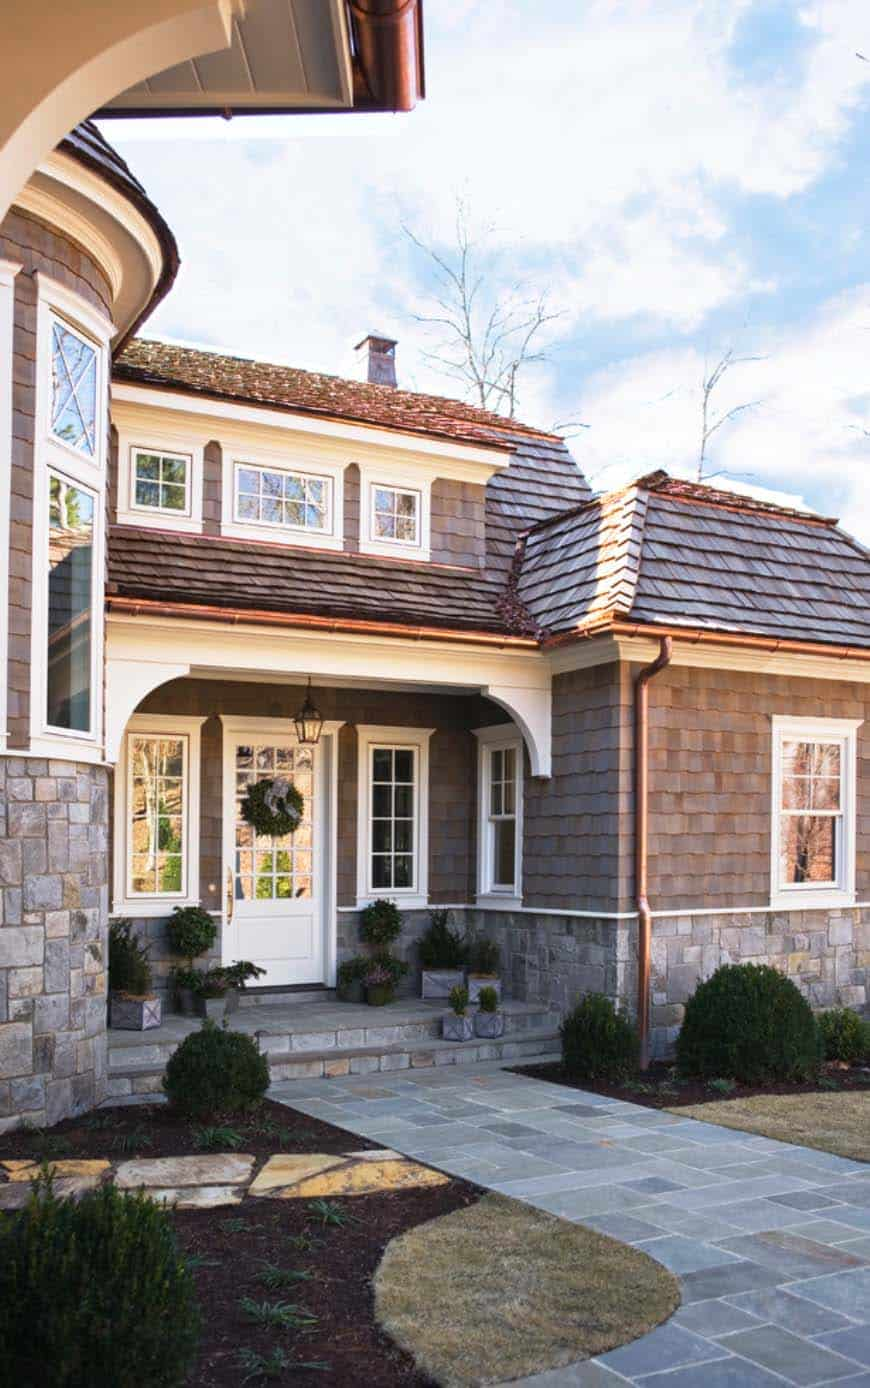 Charming shingle style cottage on lake keowee south carolina for Cottage style homes greenville sc